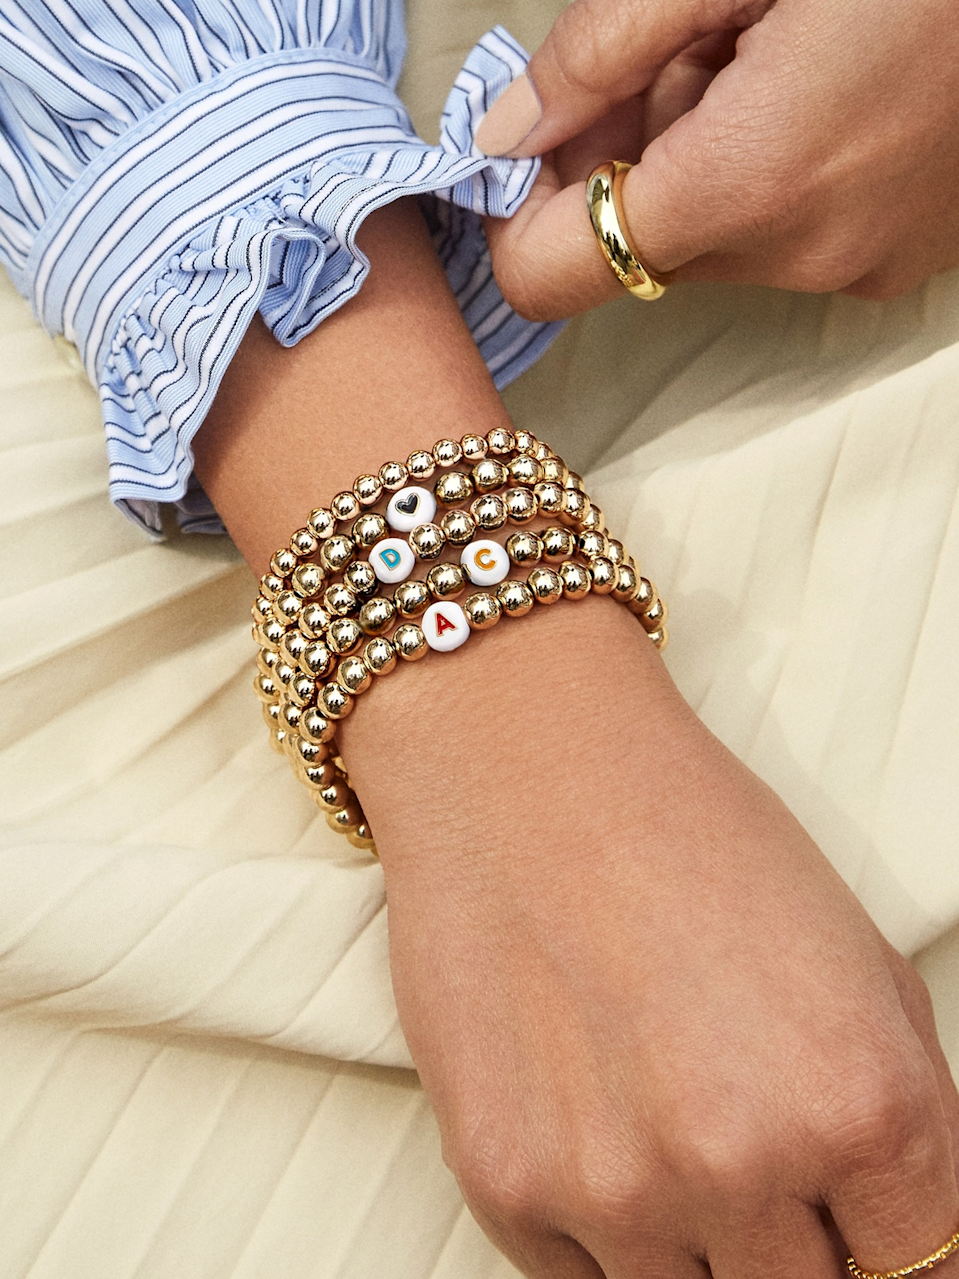 """<h3>Baublebar</h3><br><strong>Dates: </strong>Limited time<br><strong>Sale: </strong>15% off 2 or more Pisa Bracelets<br><strong>Promo Code:</strong> PISA15<br><br>It's time to take your wrist stack to the next level while saving 15% on BaubleBar's best-selling gold ball <a href=""""https://www.baublebar.com/category/whats-new/pisa-collection.html"""" rel=""""nofollow noopener"""" target=""""_blank"""" data-ylk=""""slk:Pisa Bracelets"""" class=""""link rapid-noclick-resp"""">Pisa Bracelets</a>. <br><br><strong>BaubleBar</strong> Initial Pisa Beaded Bracelet, $, available at <a href=""""https://go.skimresources.com/?id=30283X879131&url=https%3A%2F%2Fwww.baublebar.com%2Fproduct%2F52486-initial-pisa-beaded-bracelet"""" rel=""""nofollow noopener"""" target=""""_blank"""" data-ylk=""""slk:BaubleBar"""" class=""""link rapid-noclick-resp"""">BaubleBar</a>"""